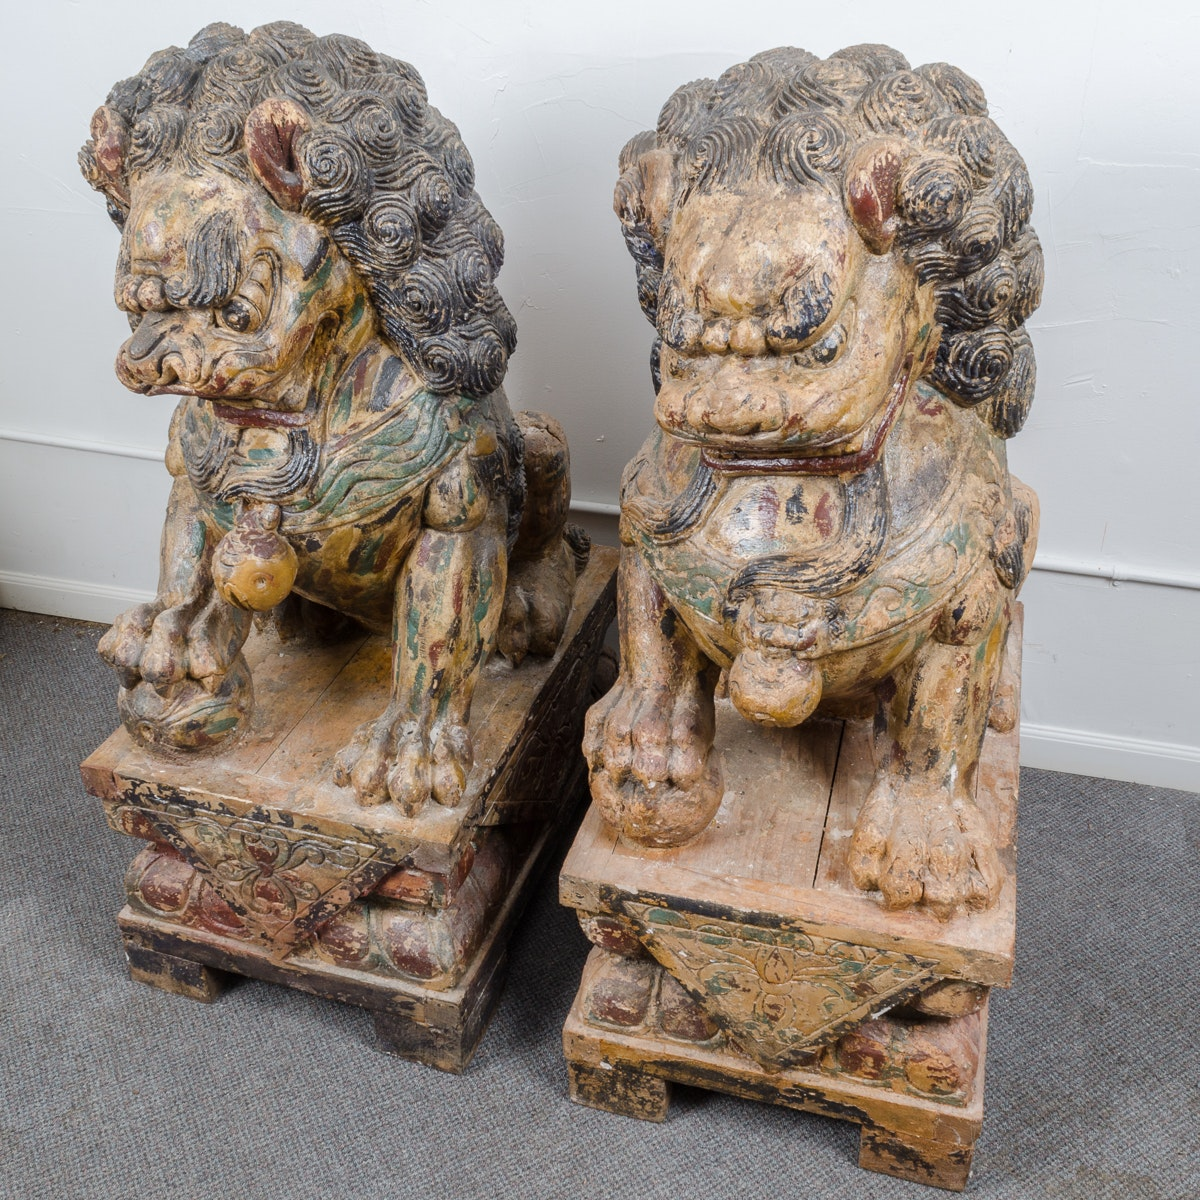 Plaster Chinese Guardian Lion Sculptures